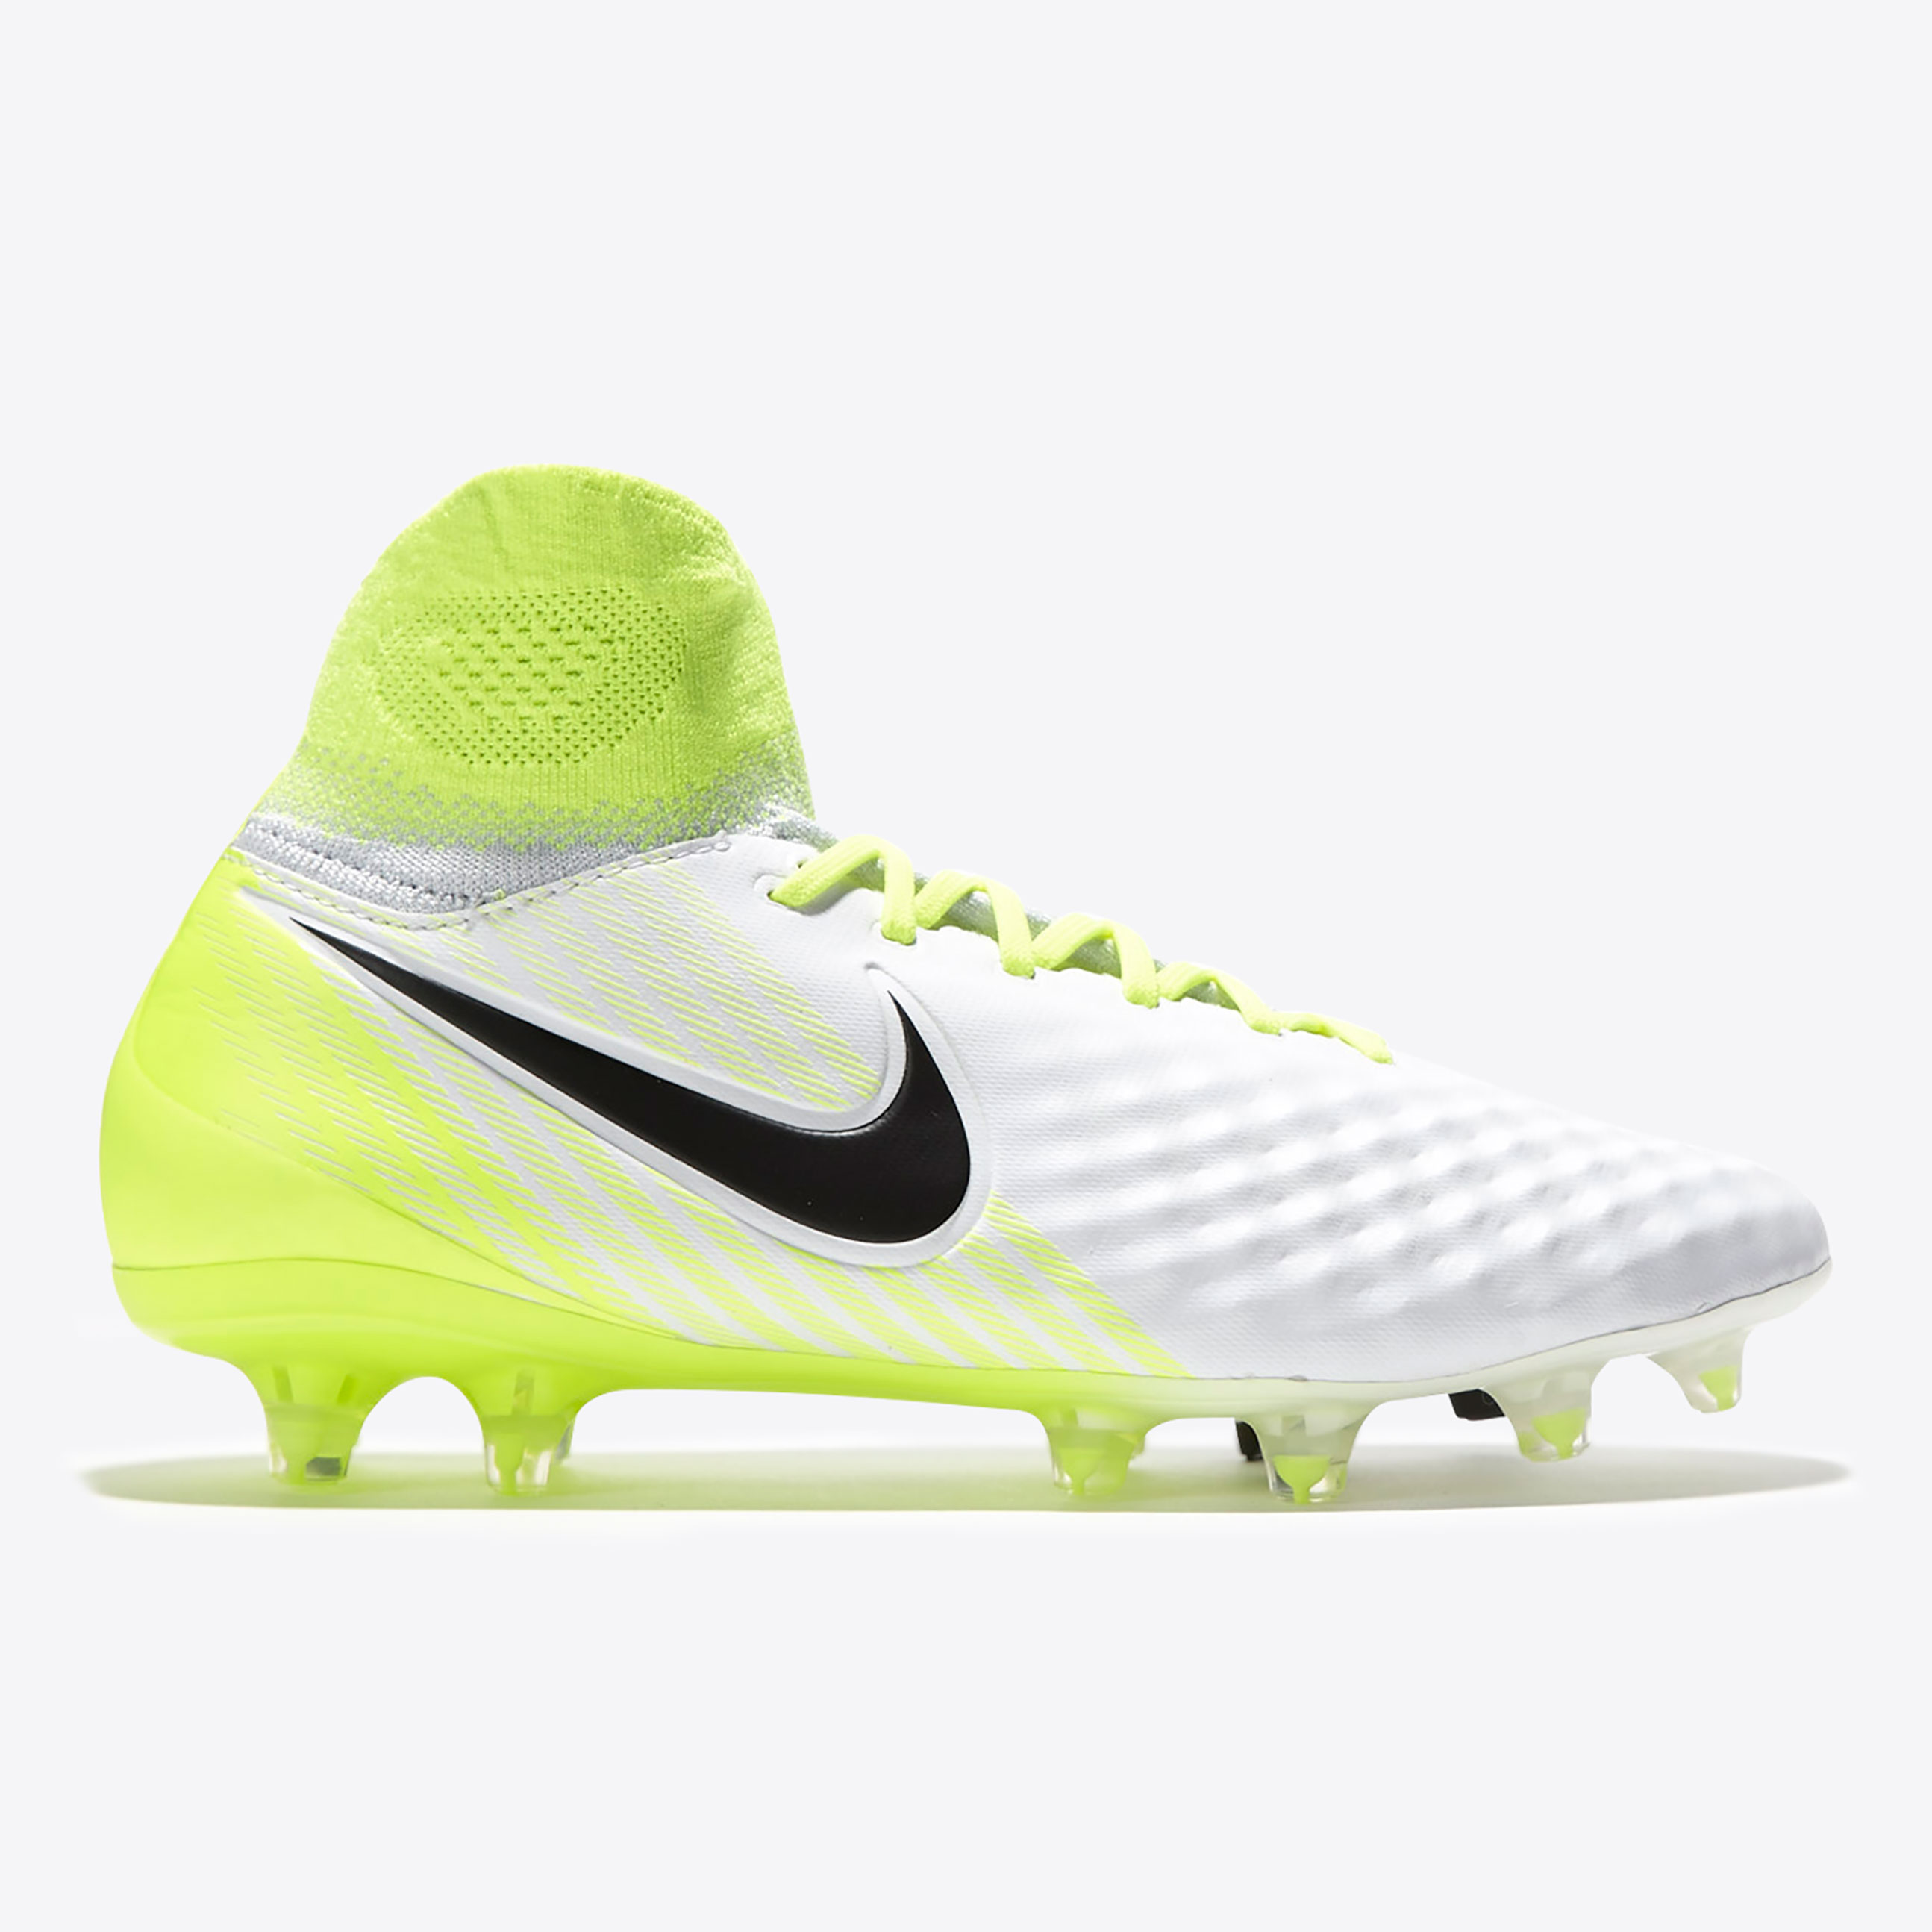 Buy Nike Magista Obra and Opus Rugby Boots - compare prices 9fc623c442